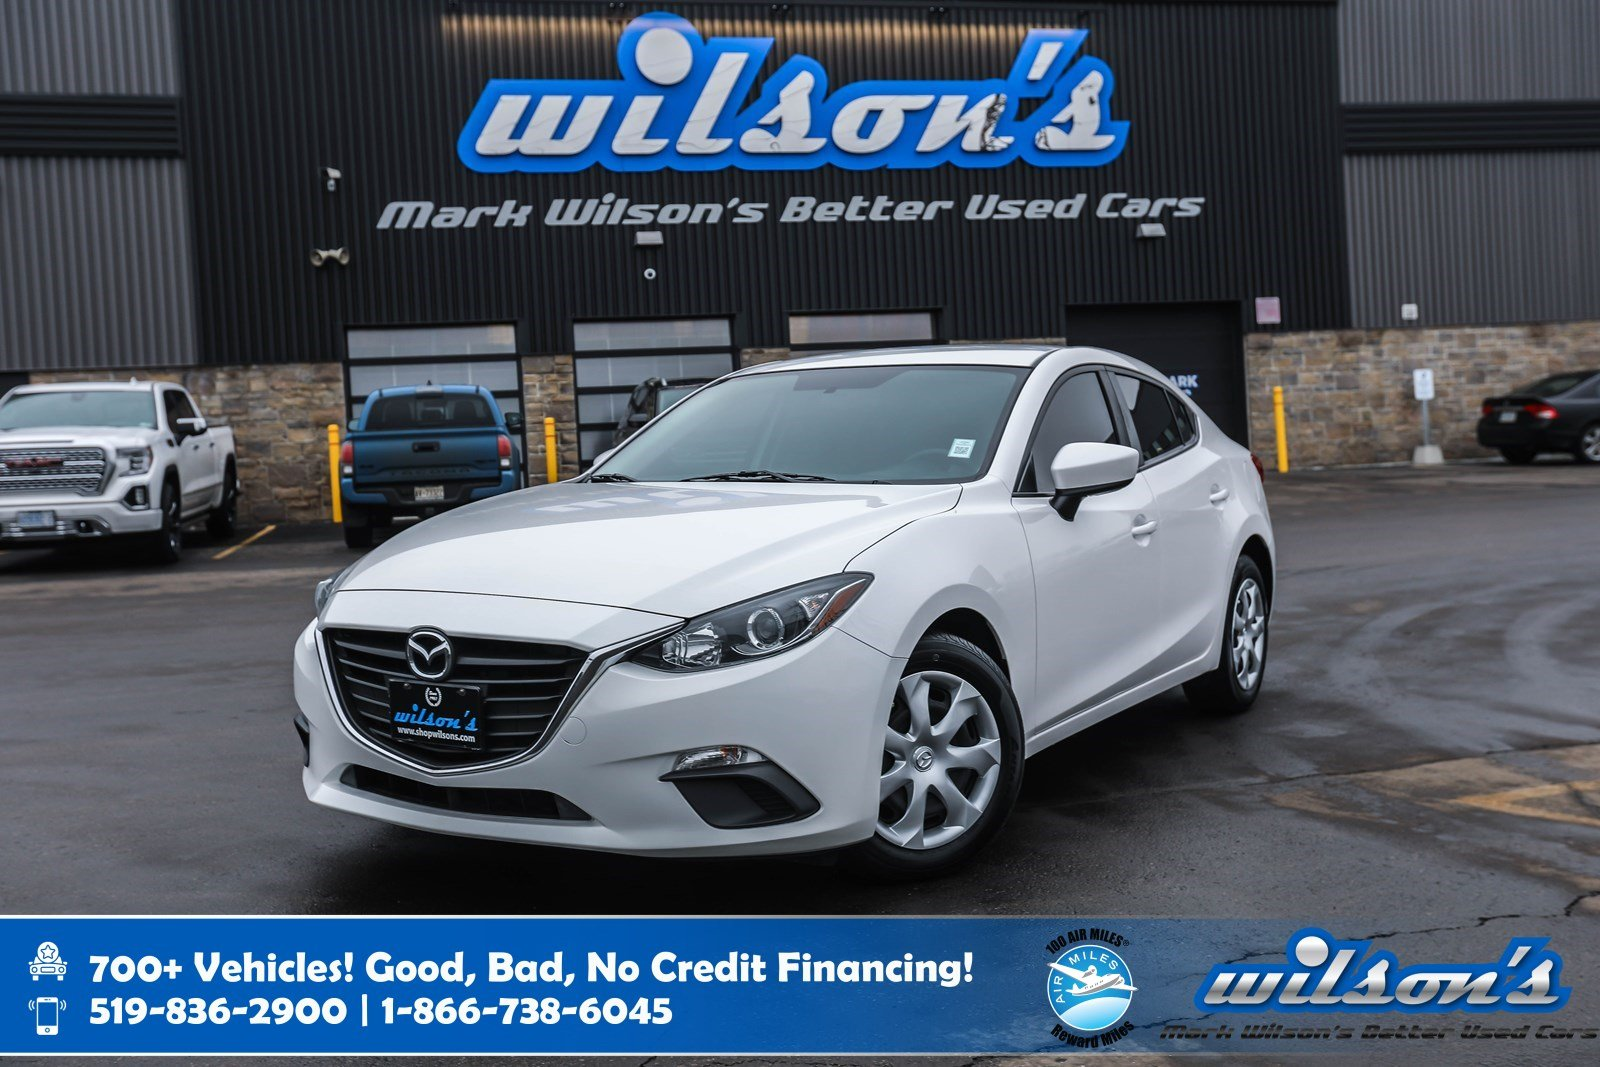 Certified Pre-Owned 2015 Mazda3 GX, 6 Speed, Bluetooth, New Tires, Keyless Entry, Power Package and more!